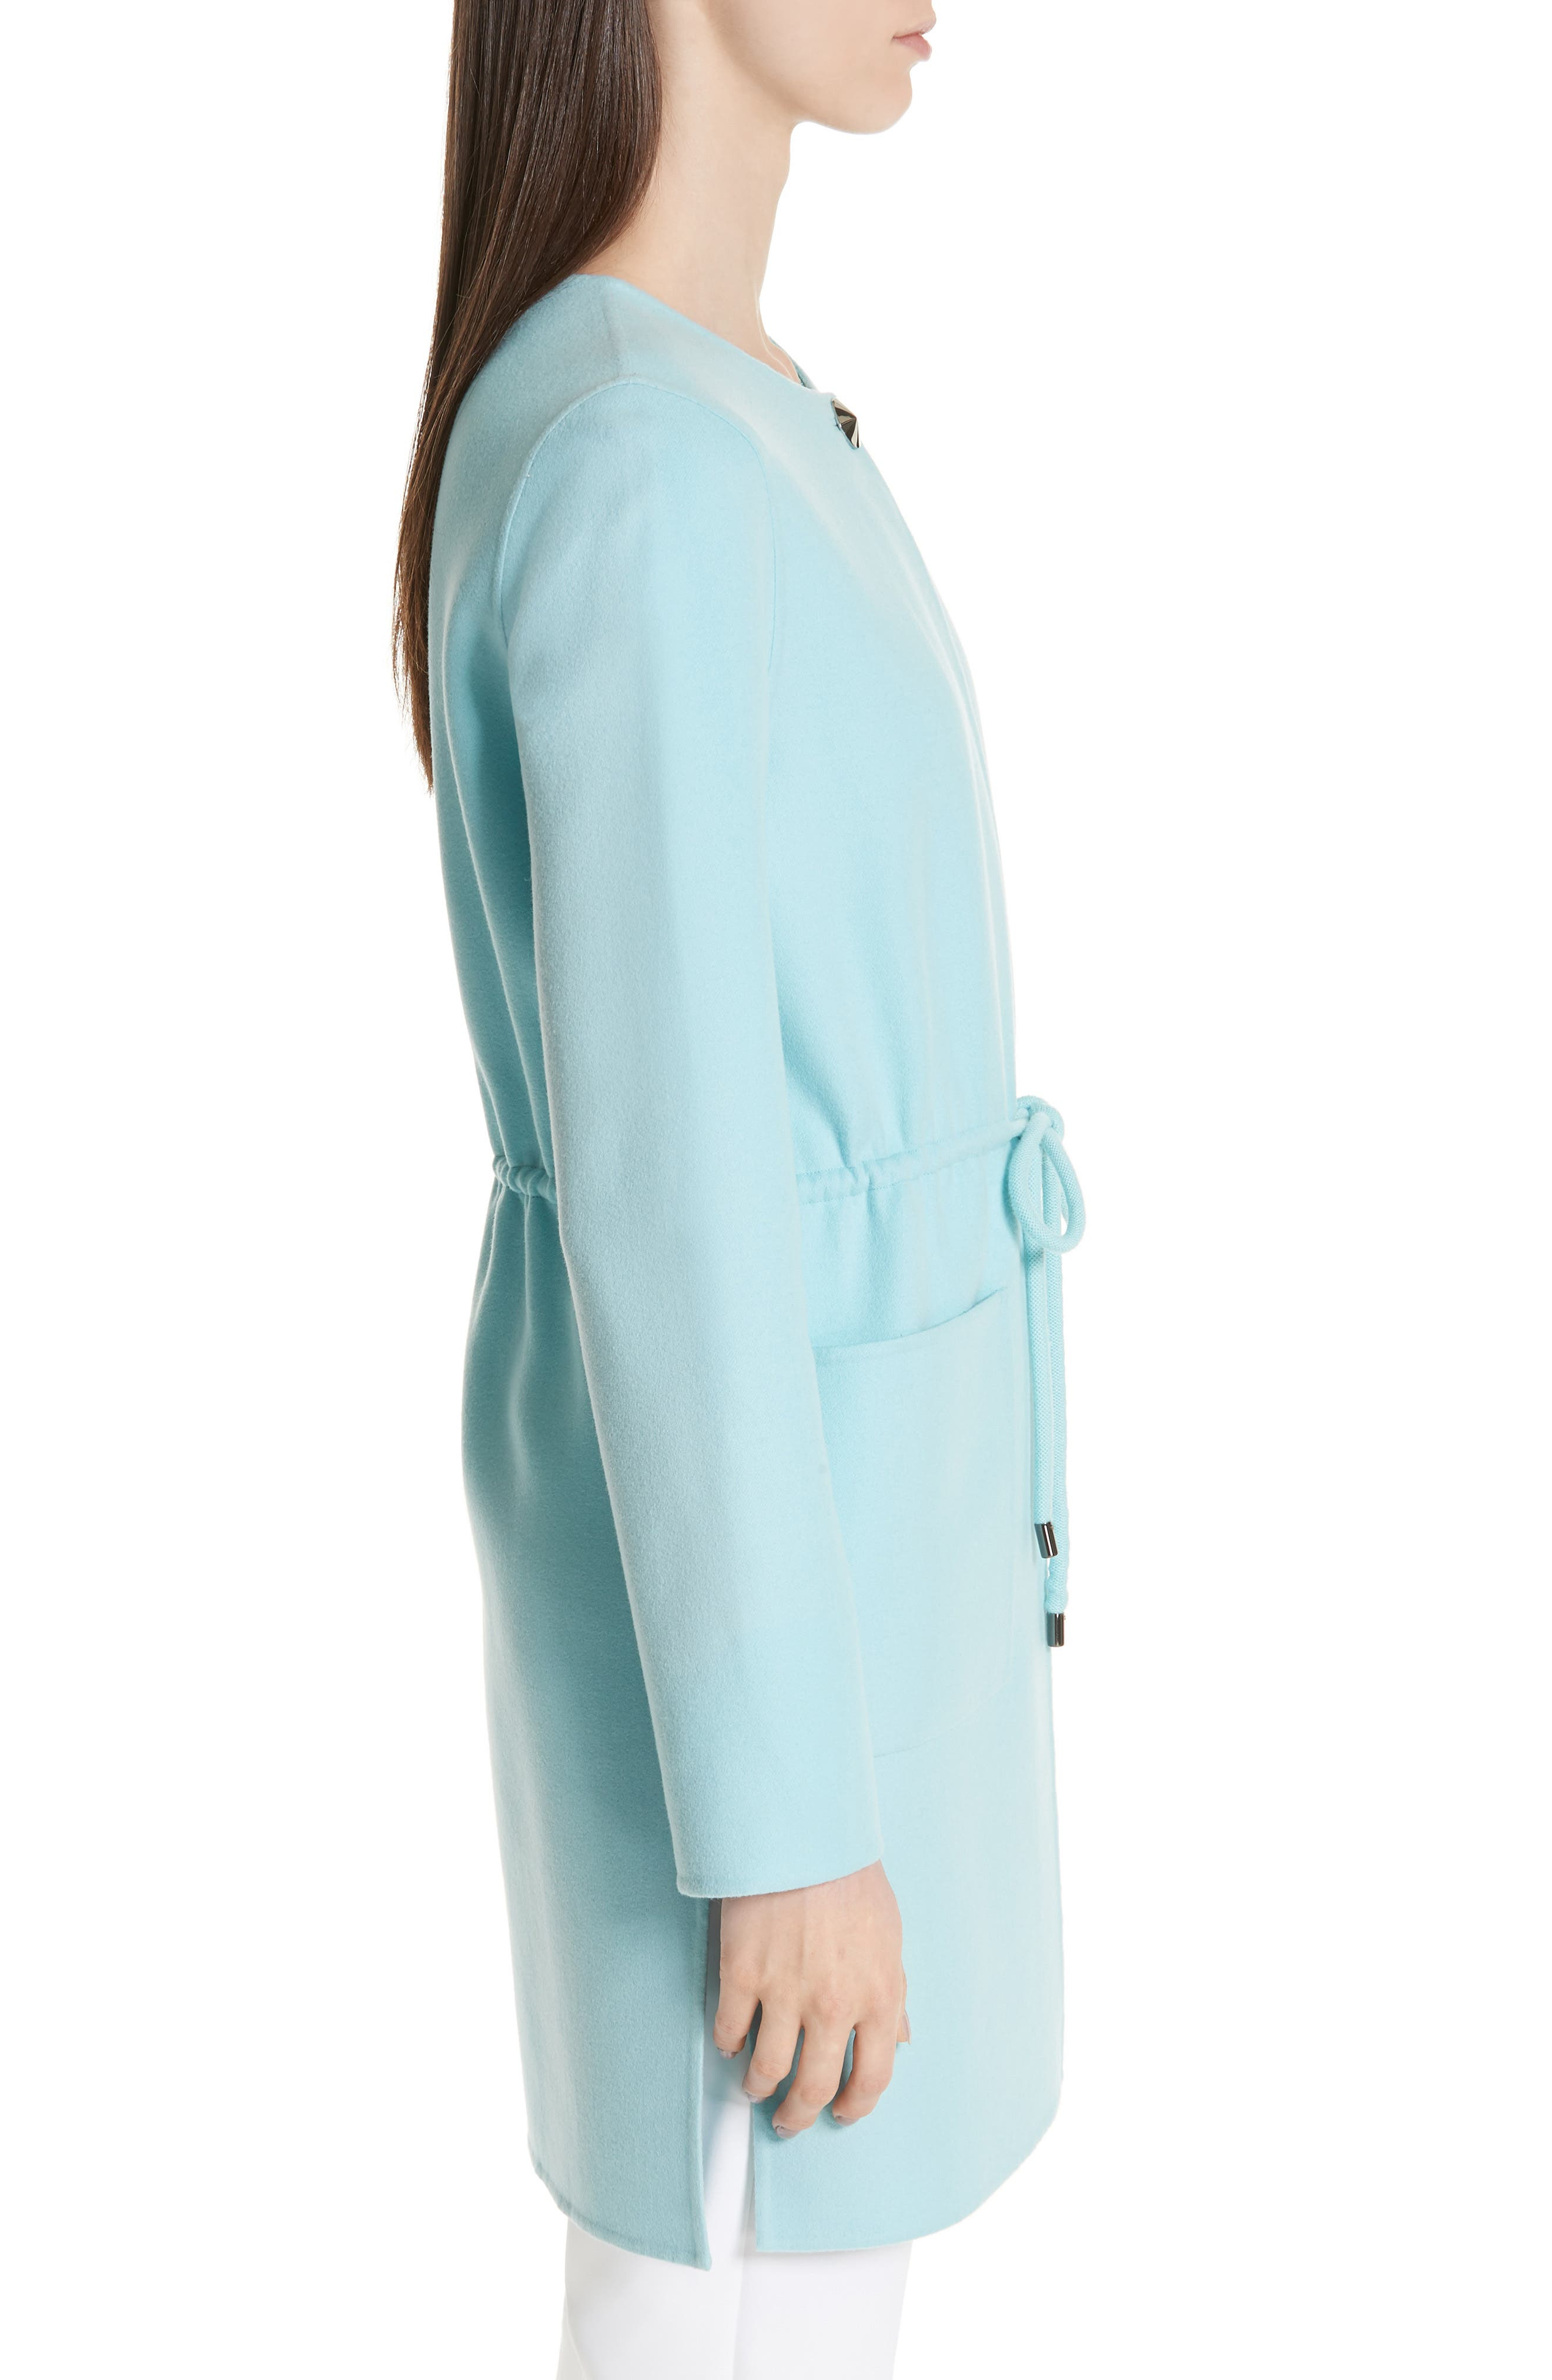 ST. JOHN COLLECTION,                             Double Face Wool & Cashmere Jacket,                             Alternate thumbnail 4, color,                             AQUAMARINE